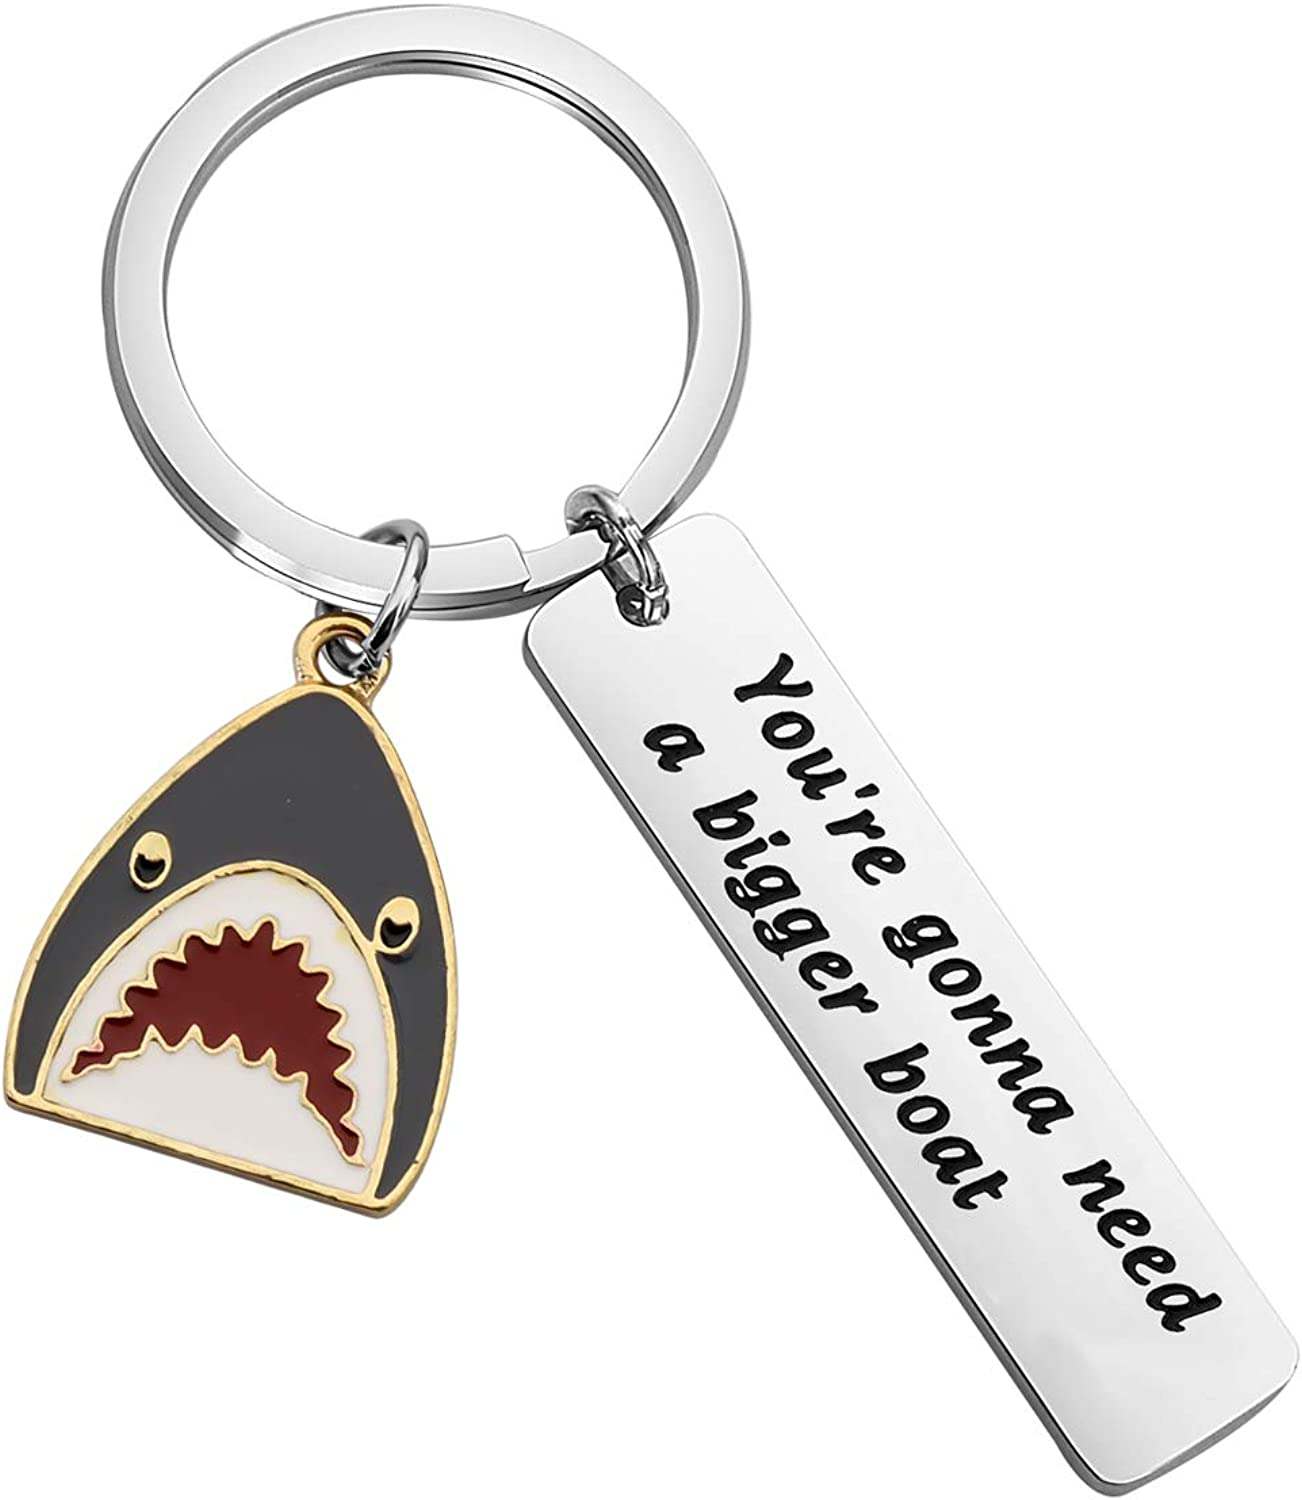 SEIRAA Topics on TV Shark Jewelry You're Gonna Attention brand Need Gi Boat A Keychain Bigger